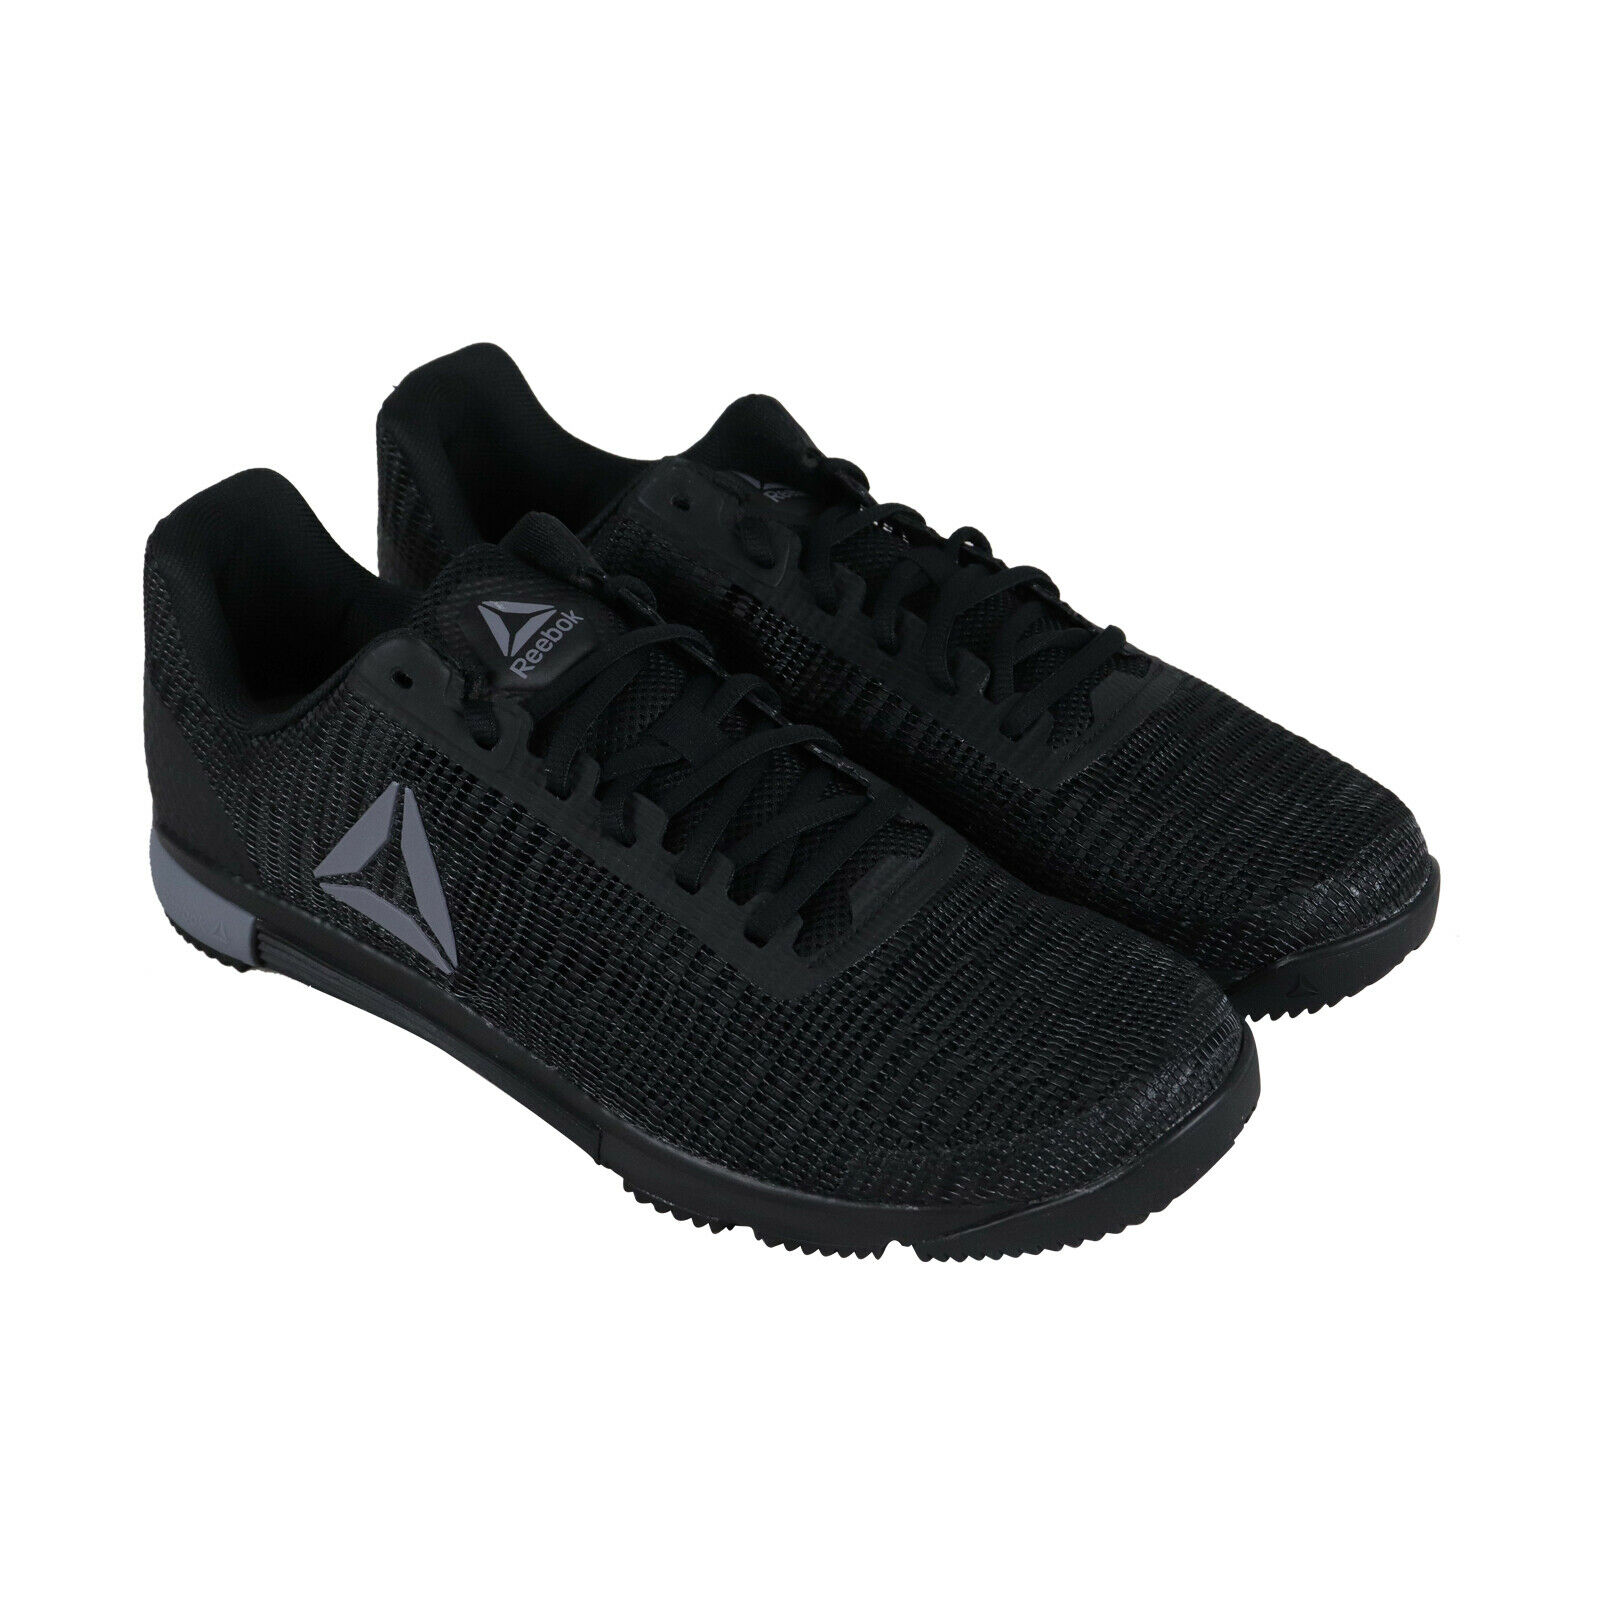 Reebok Speed Tr Flexweave Mens Black Textile Athletic Training shoes